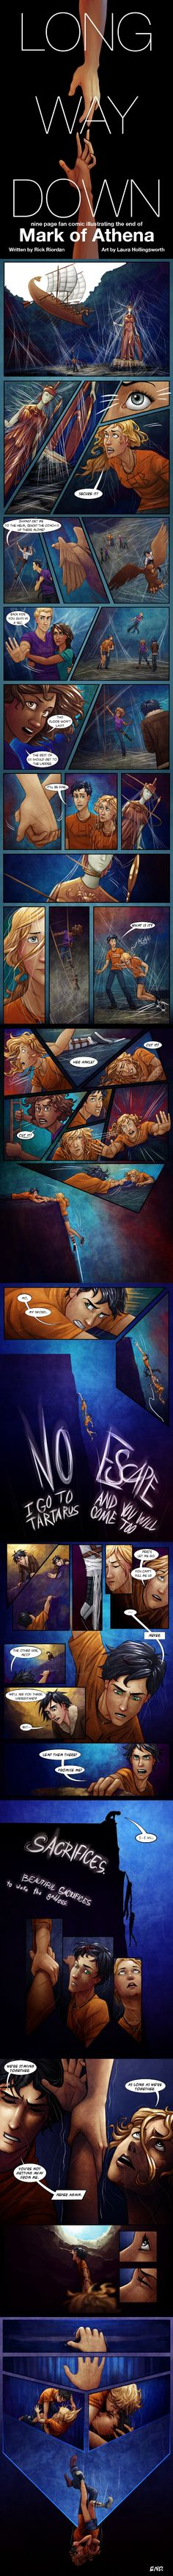 Long Way Down - Complete Comic - Mark of Athena by lostie815.deviantart.com on @deviantART WWWHHHYYYYYY..... but, so beautiful...